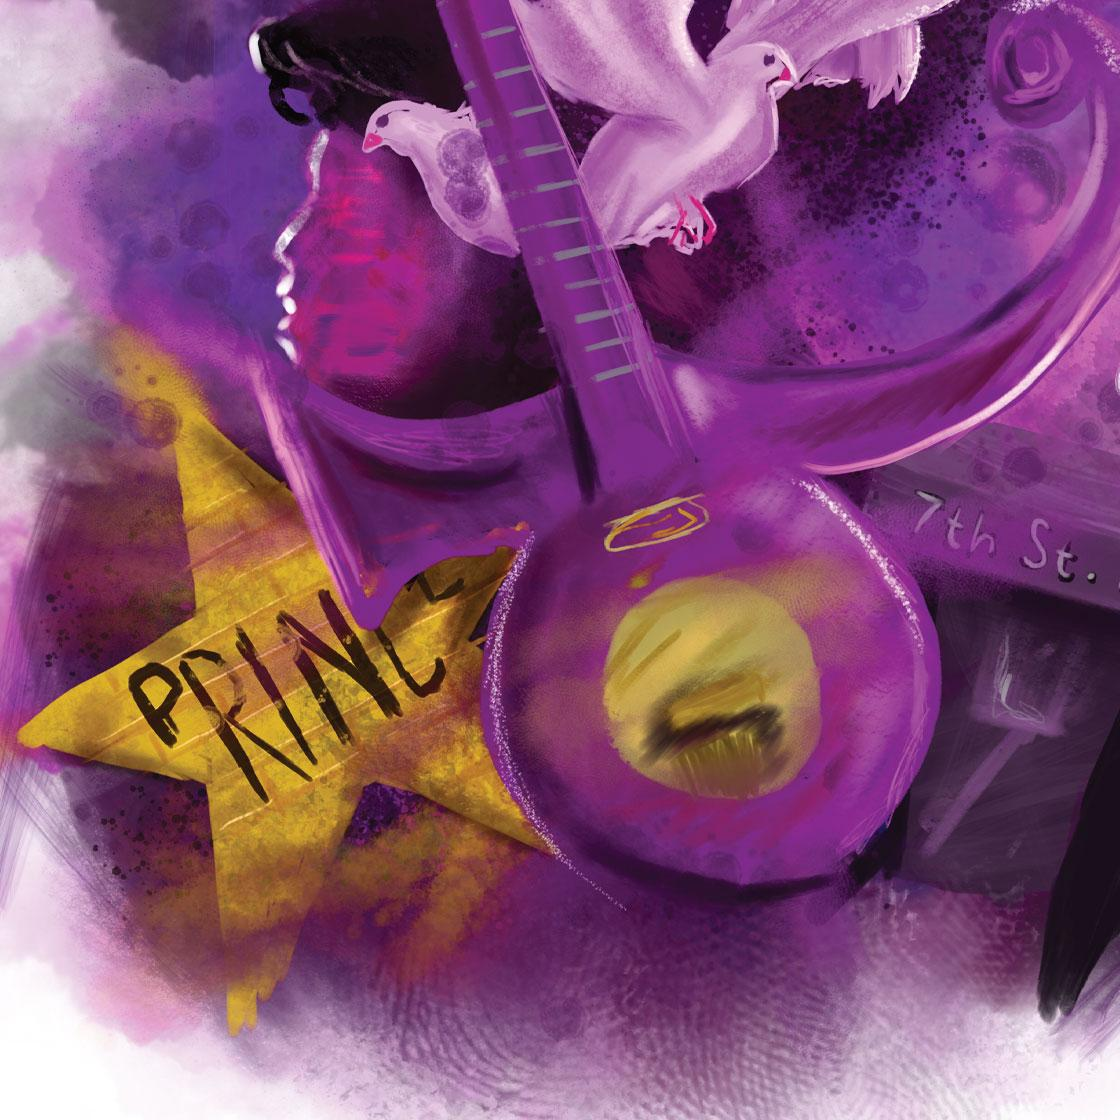 A graphically illustrated image of a purple guitar and the word Prince inside a golden star